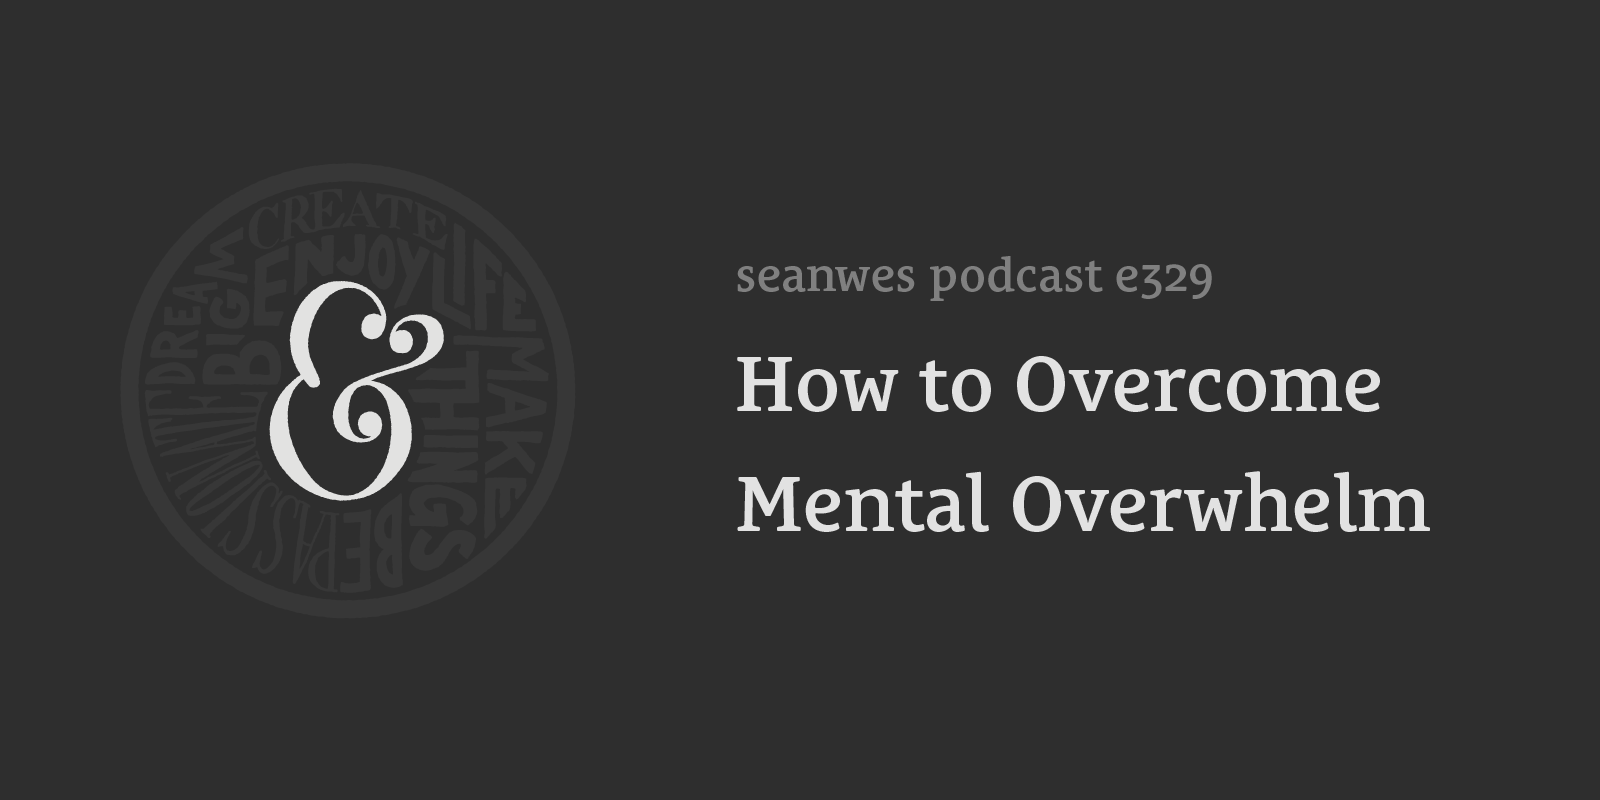 How to Overcome Mental Overwhelm